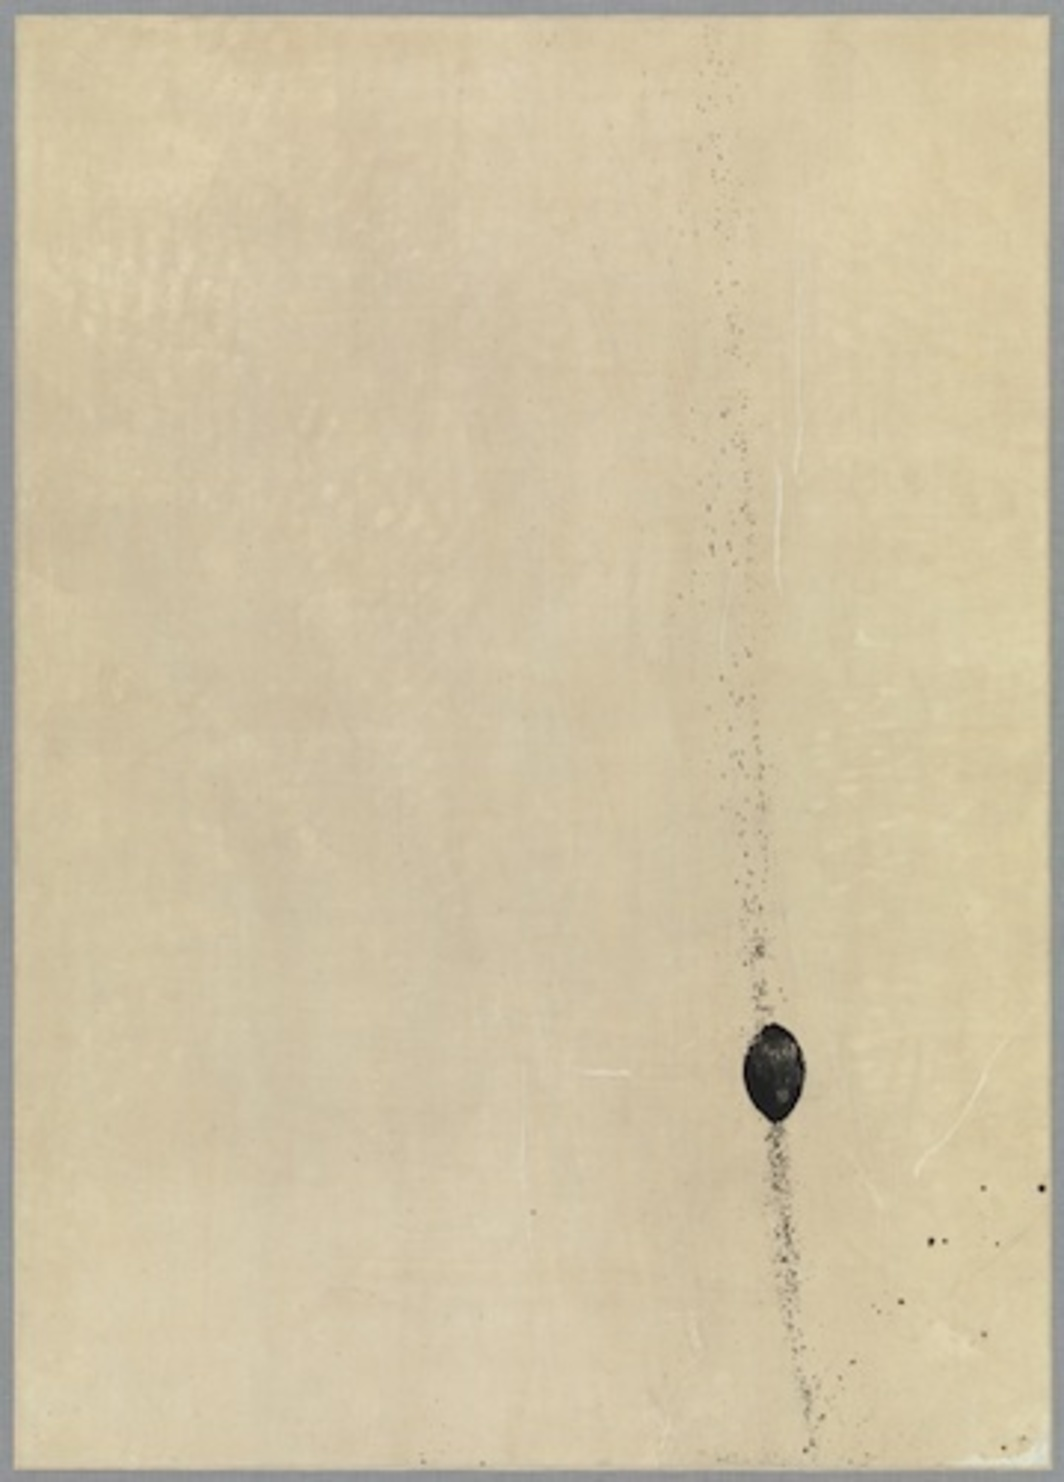 "Saburo Murakami, Tôkyû kaiga (Work Painted by Throwing a Ball), 1954, gouache on Japanese paper, 41 5/8 x 29 3/4""."